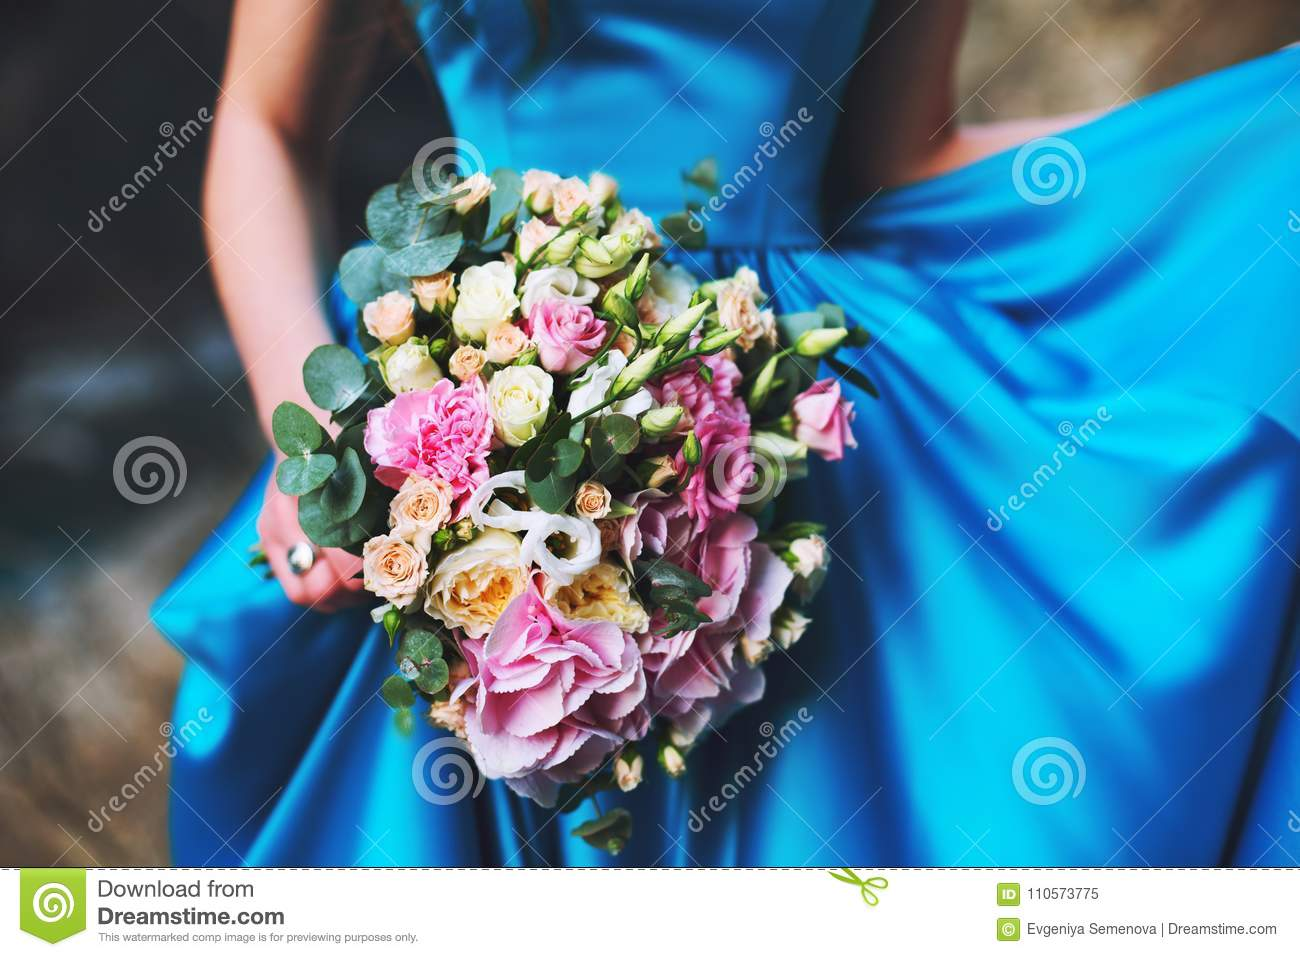 A Girl In A Blue Dress Is Holding A Wedding Bouquet Of Flowers From Roses Stock Image Image Of Hold Blue 110573775